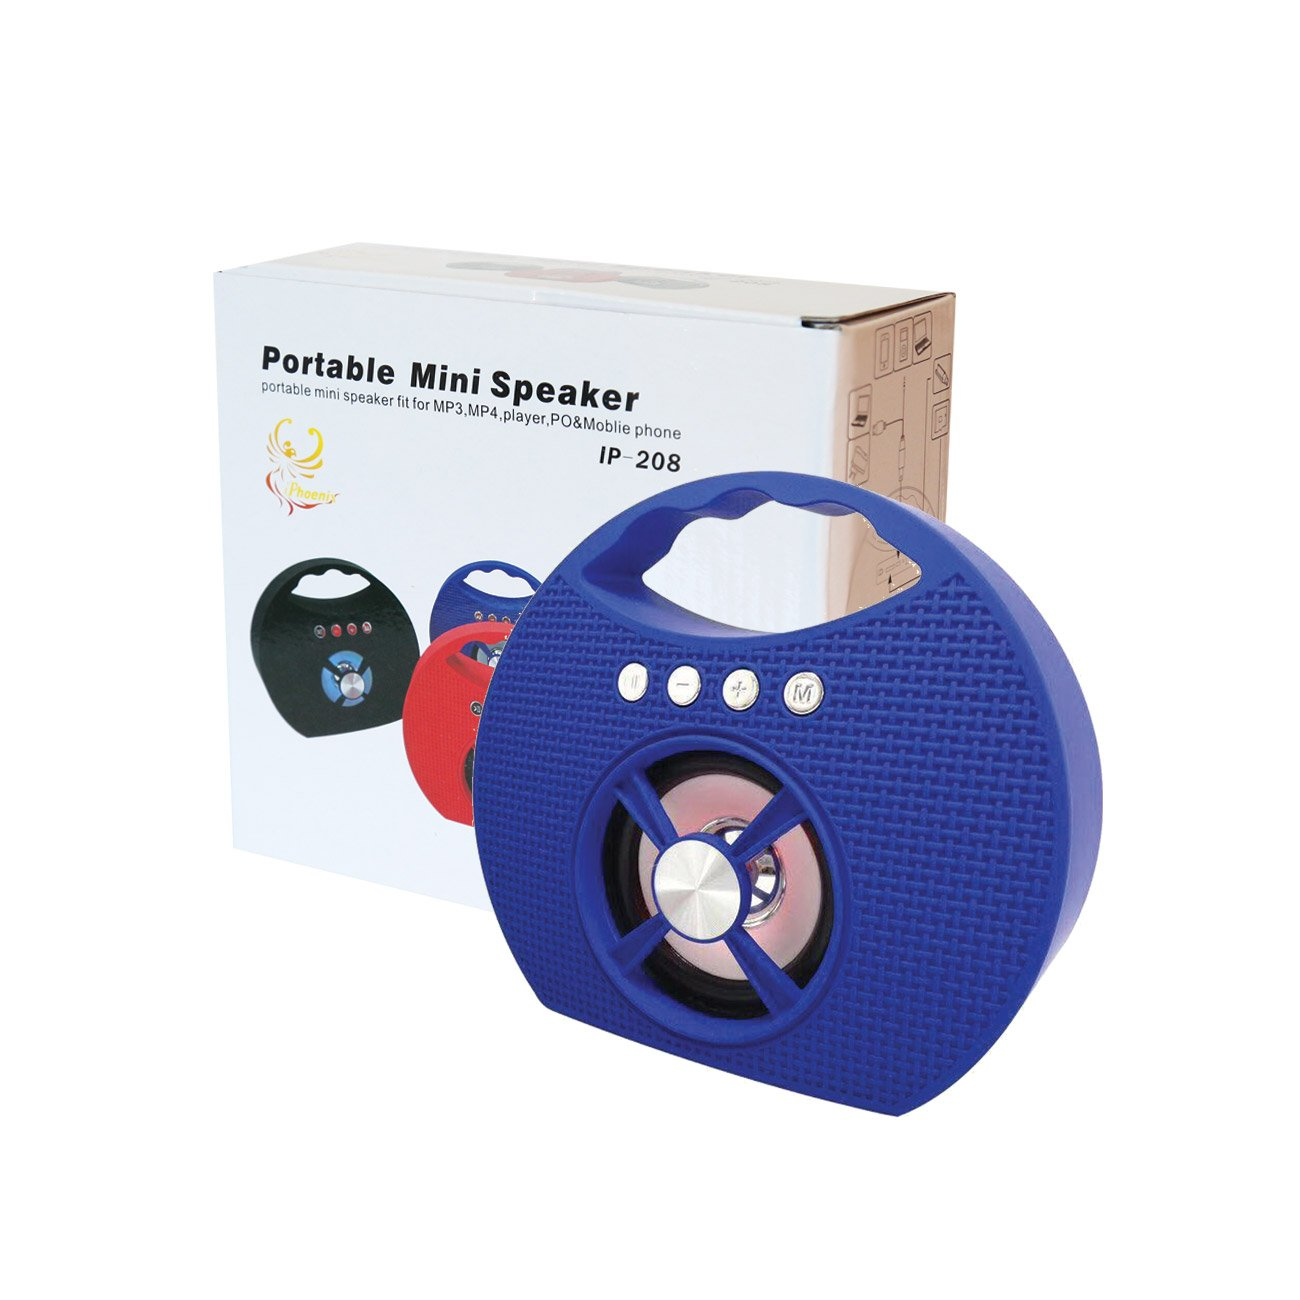 Portable USB FM Radio Bluethooth Speaker Music Player with lights and handle In Blue